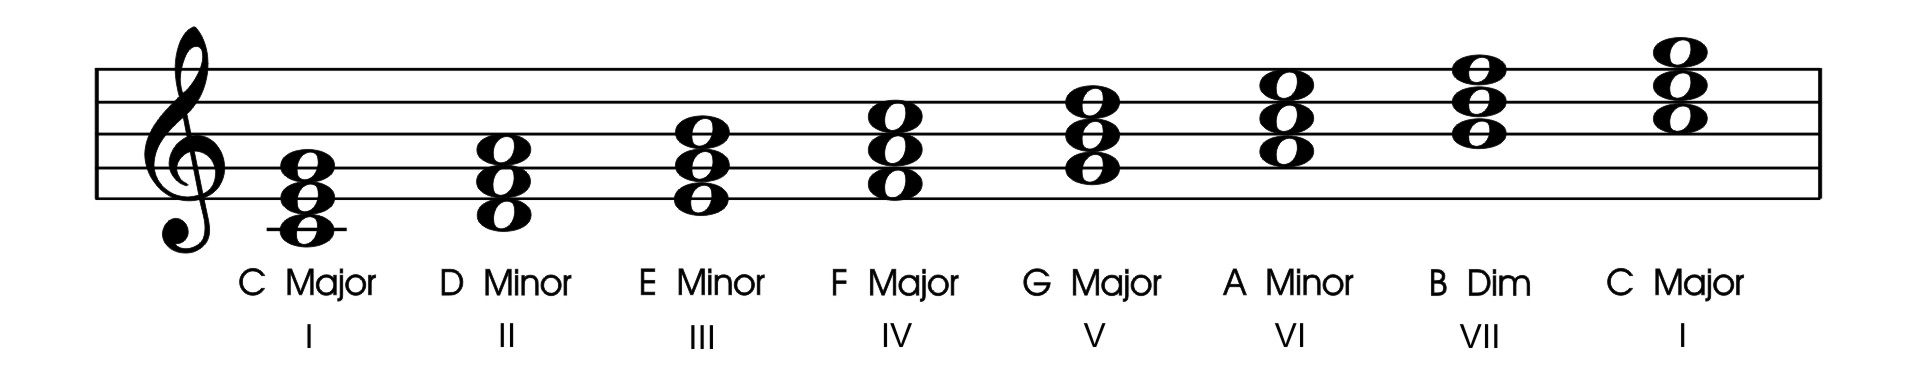 nashville number system key of c chords